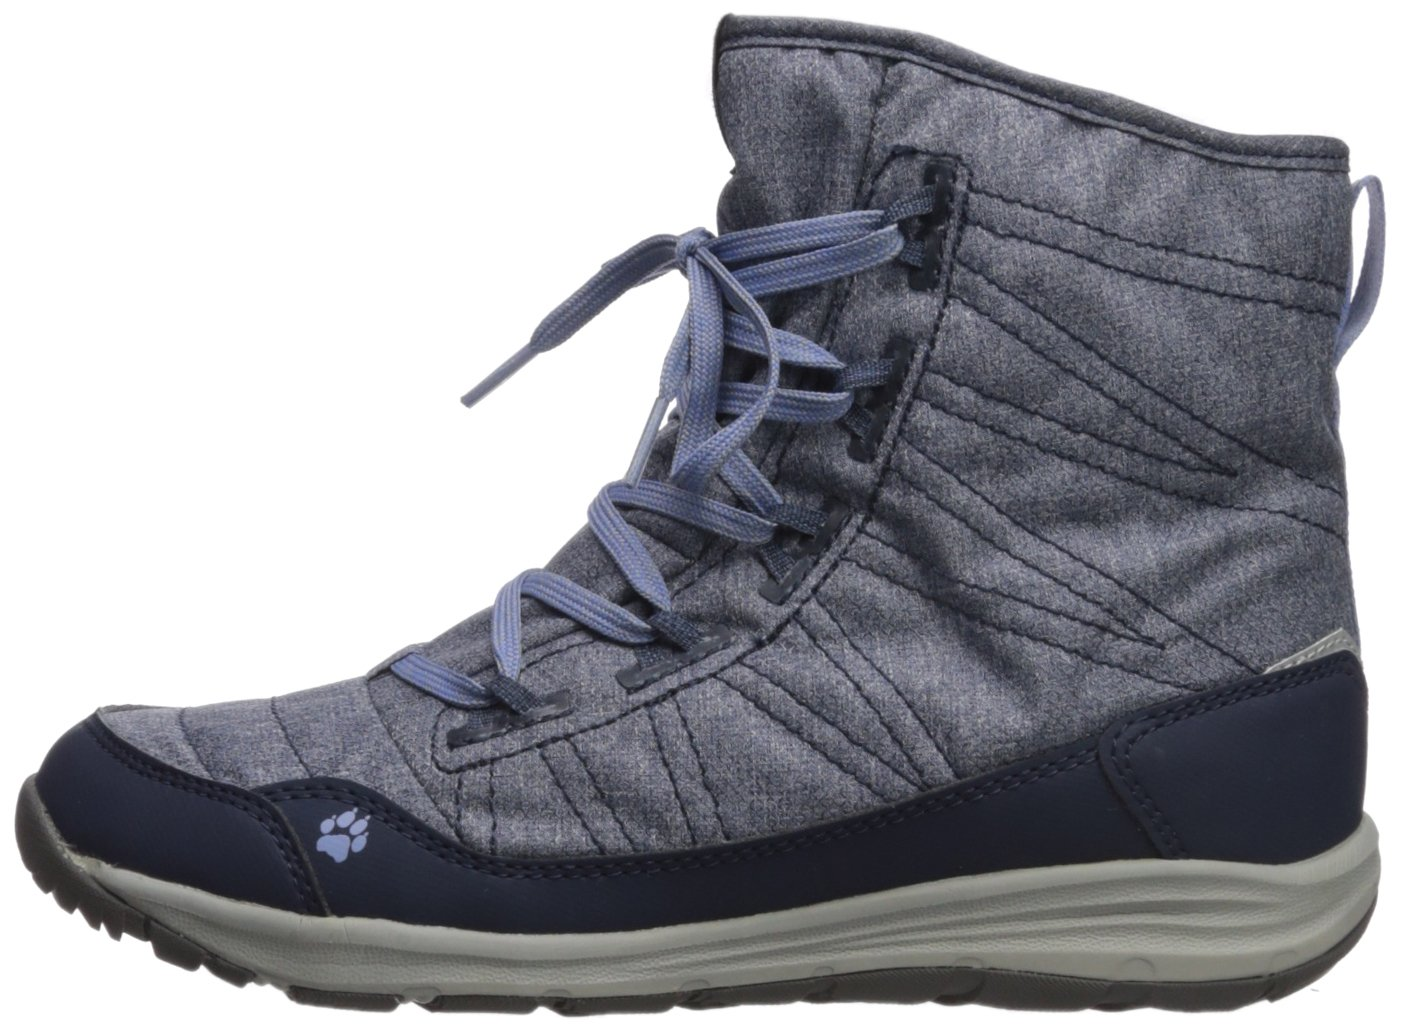 Jack B07411H1WY Wolfskin Women's Portland W Fashion Boot B07411H1WY Jack 7.5 D US|Midnight Blue 83cba6